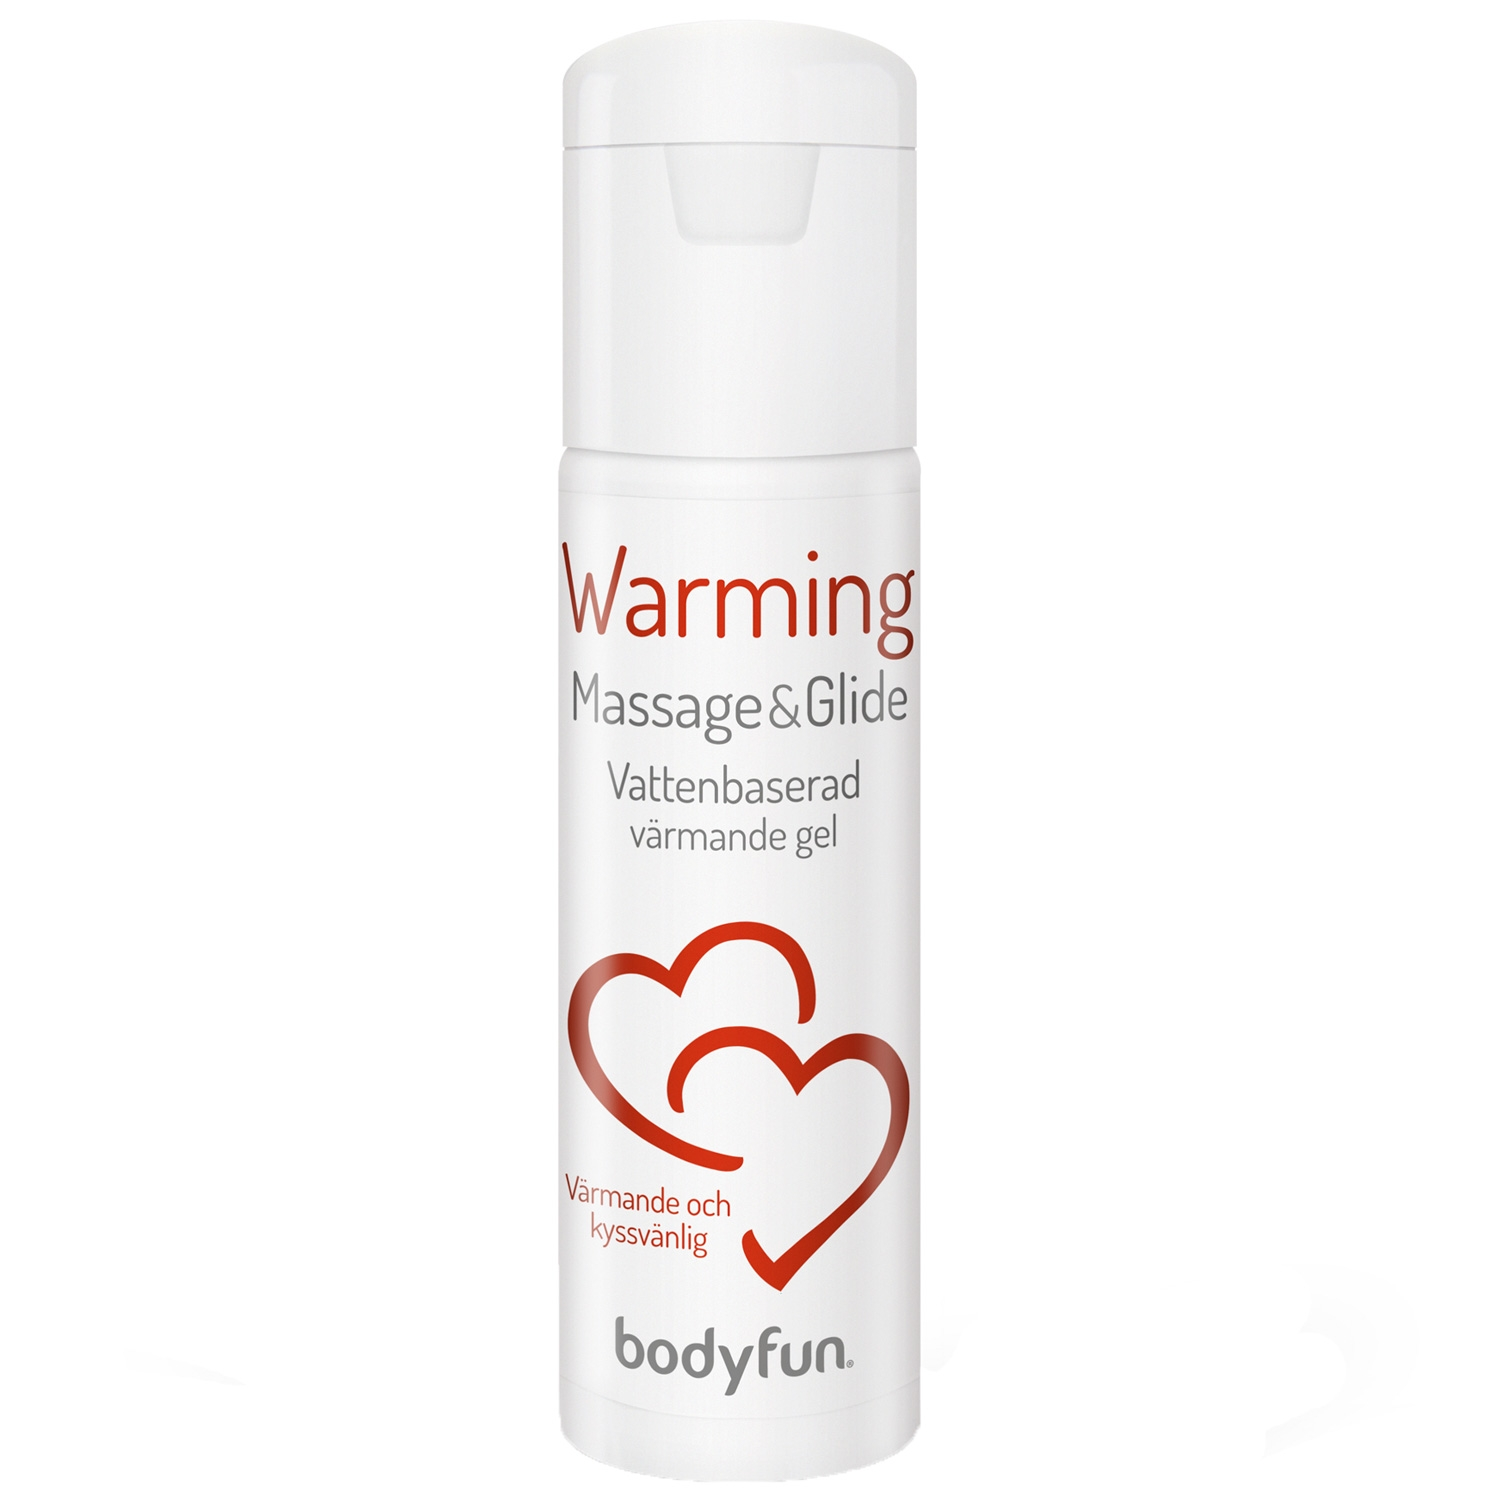 Bodyfun Warming Massage og Glidecreme 100 ml thumbnail